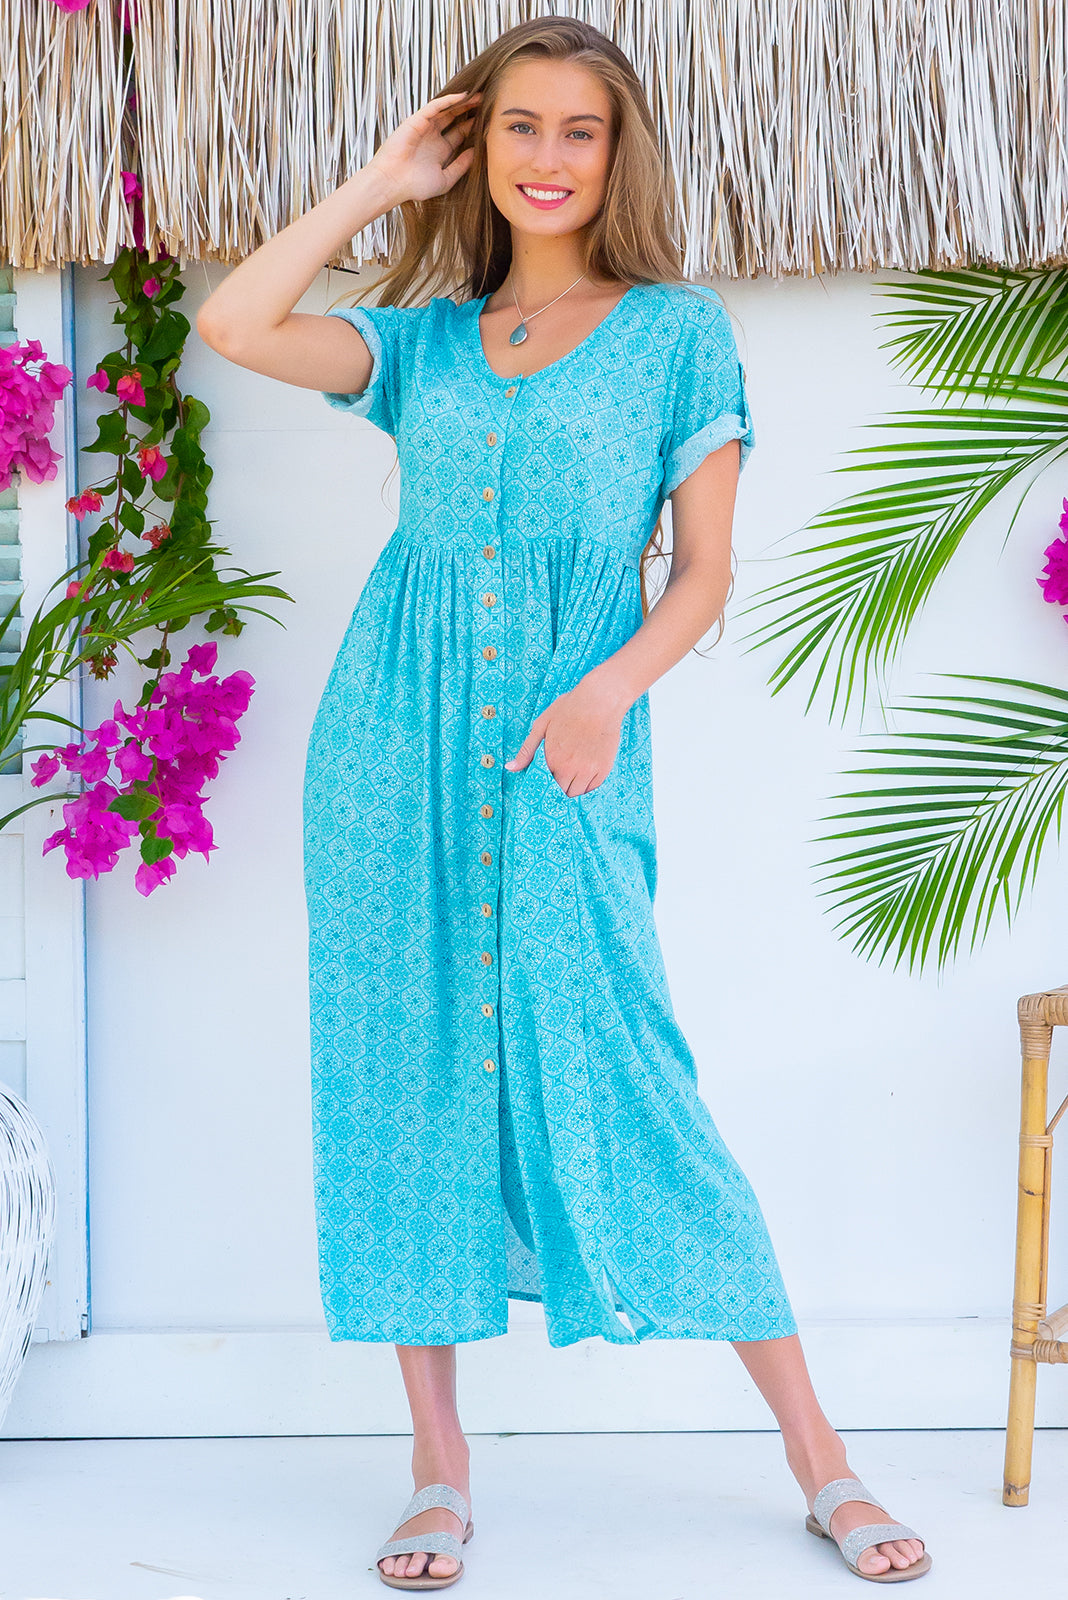 Rocco Sea Glass Blue Maxi Dress, plus size dress with button front, maternity and breastfeeding suitable